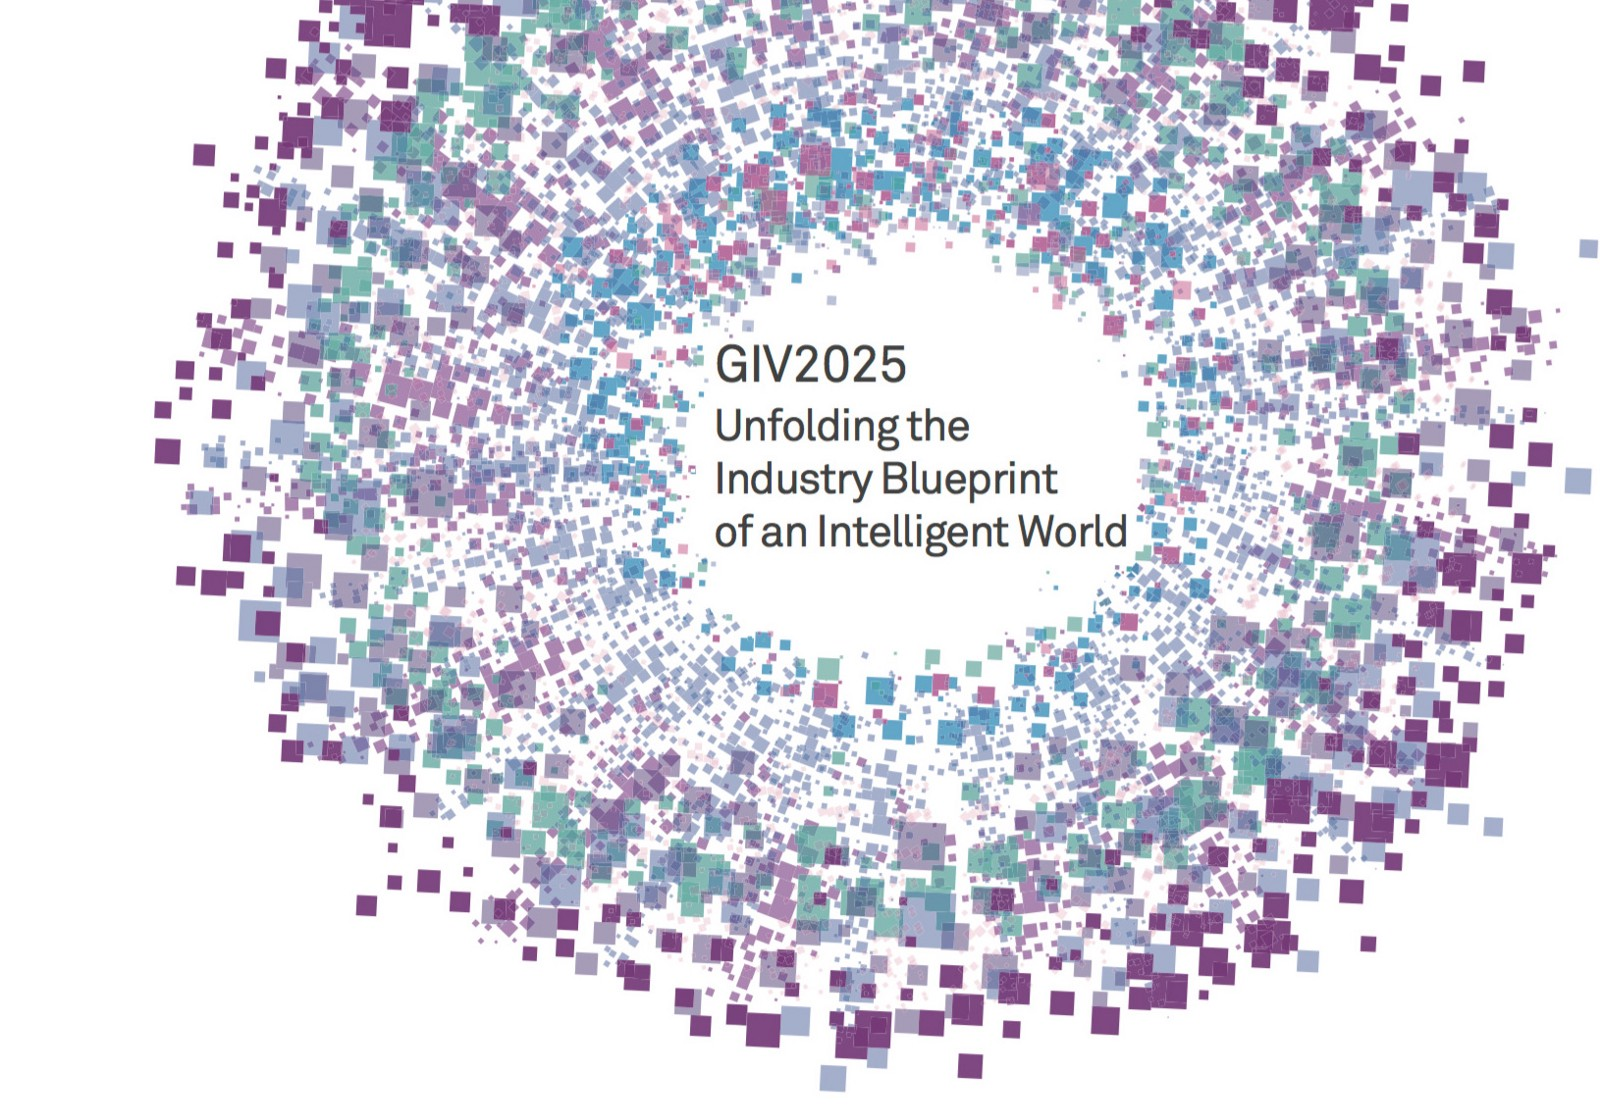 Huawei Global Industry Vision (GIV) 2025 : Unfolding the Industry Blueprint of an Intelligent World